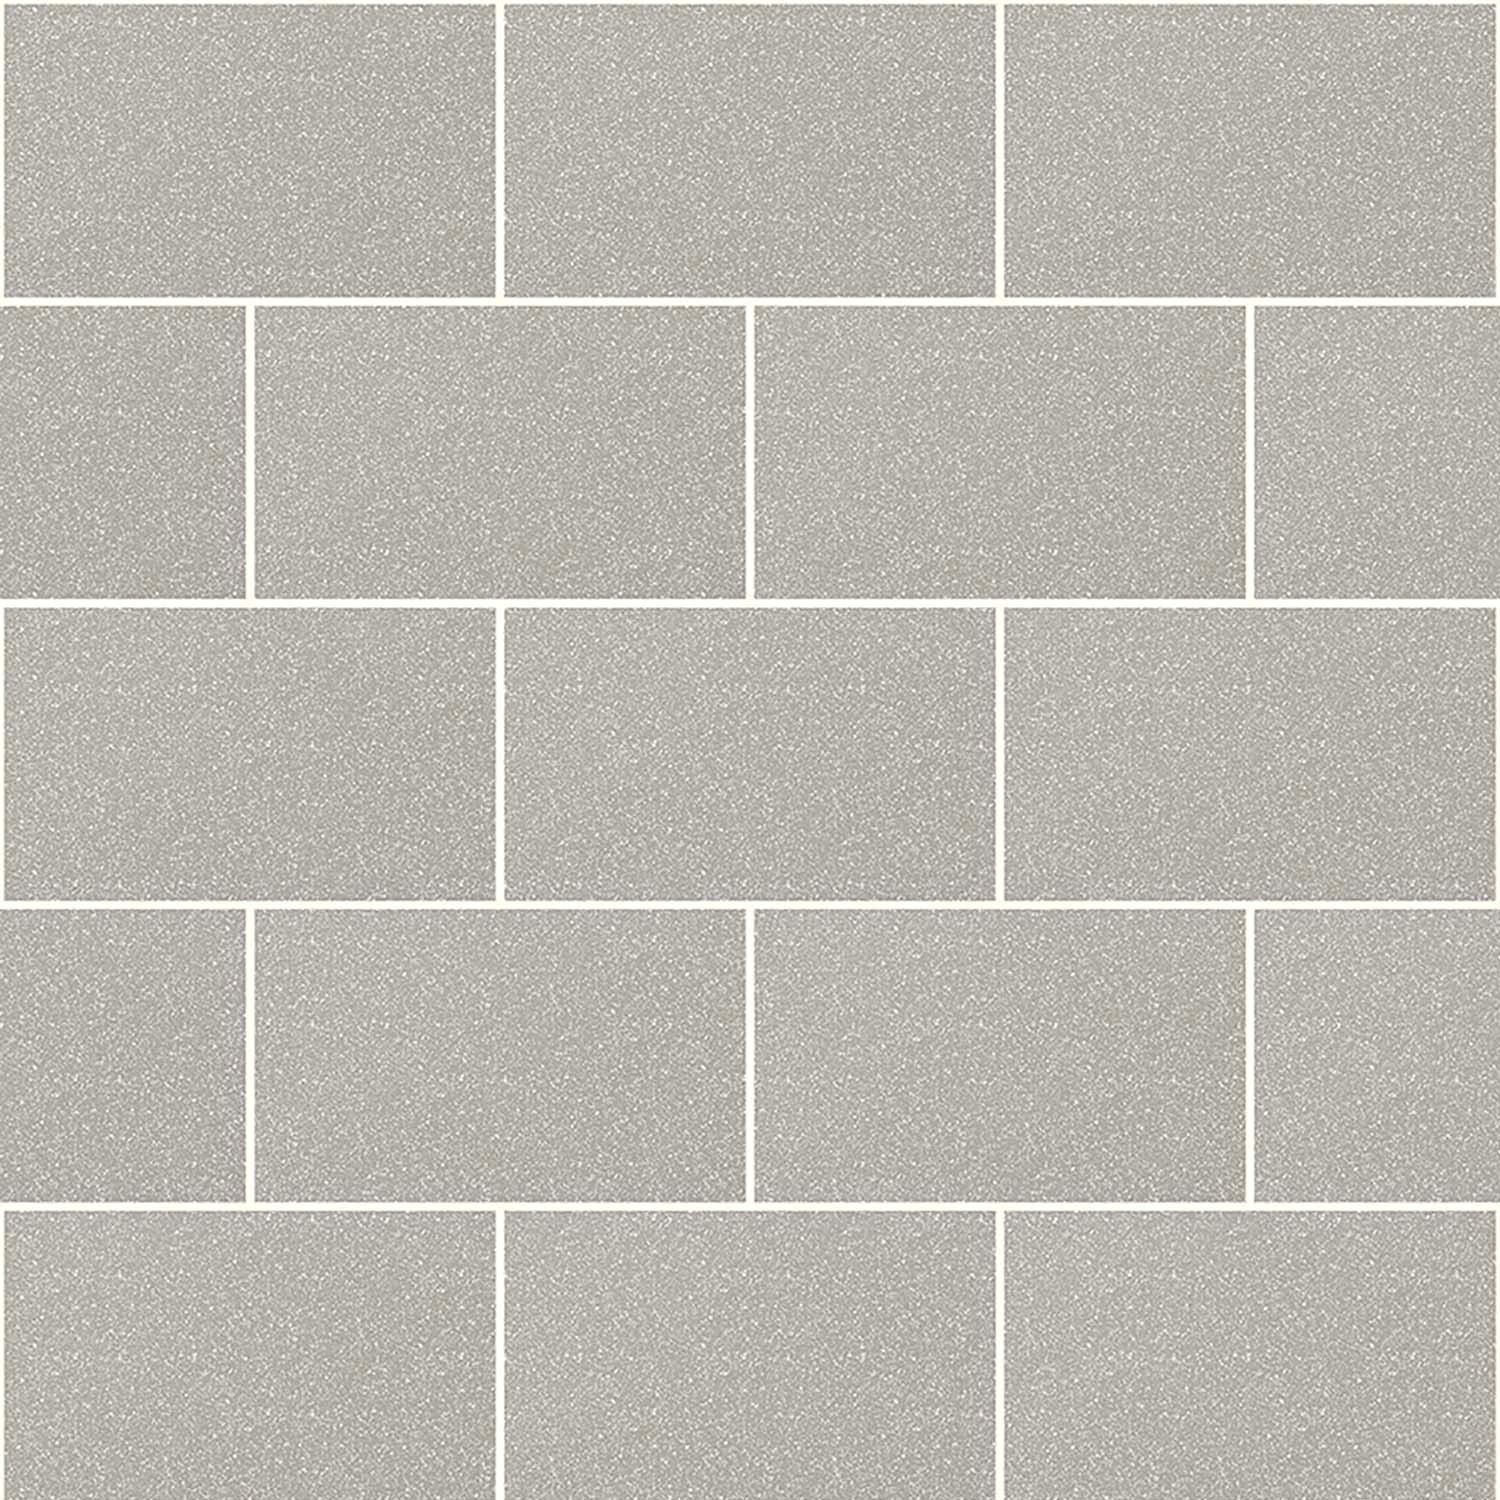 Wallpaper Tiles For Kitchen: Brick Effect Wallpaper Kitchen Bathroom Vinyl Glitter